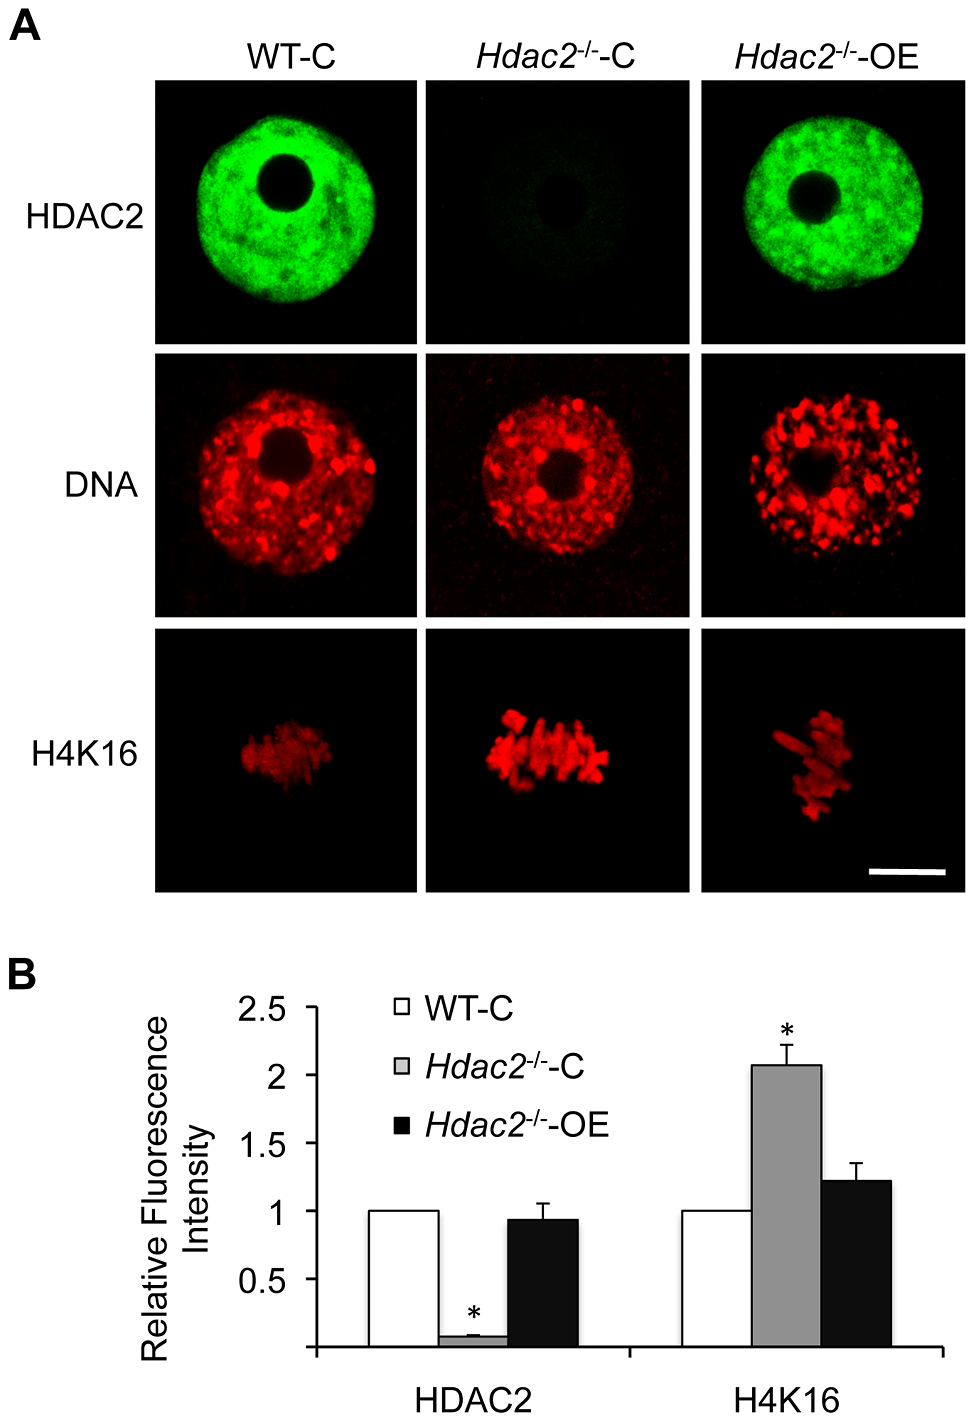 Expression of HDAC2 in <i>Hdac2</i><sup>−/−</sup> oocytes restores maturation-associated deacetylation of histone H4K16.